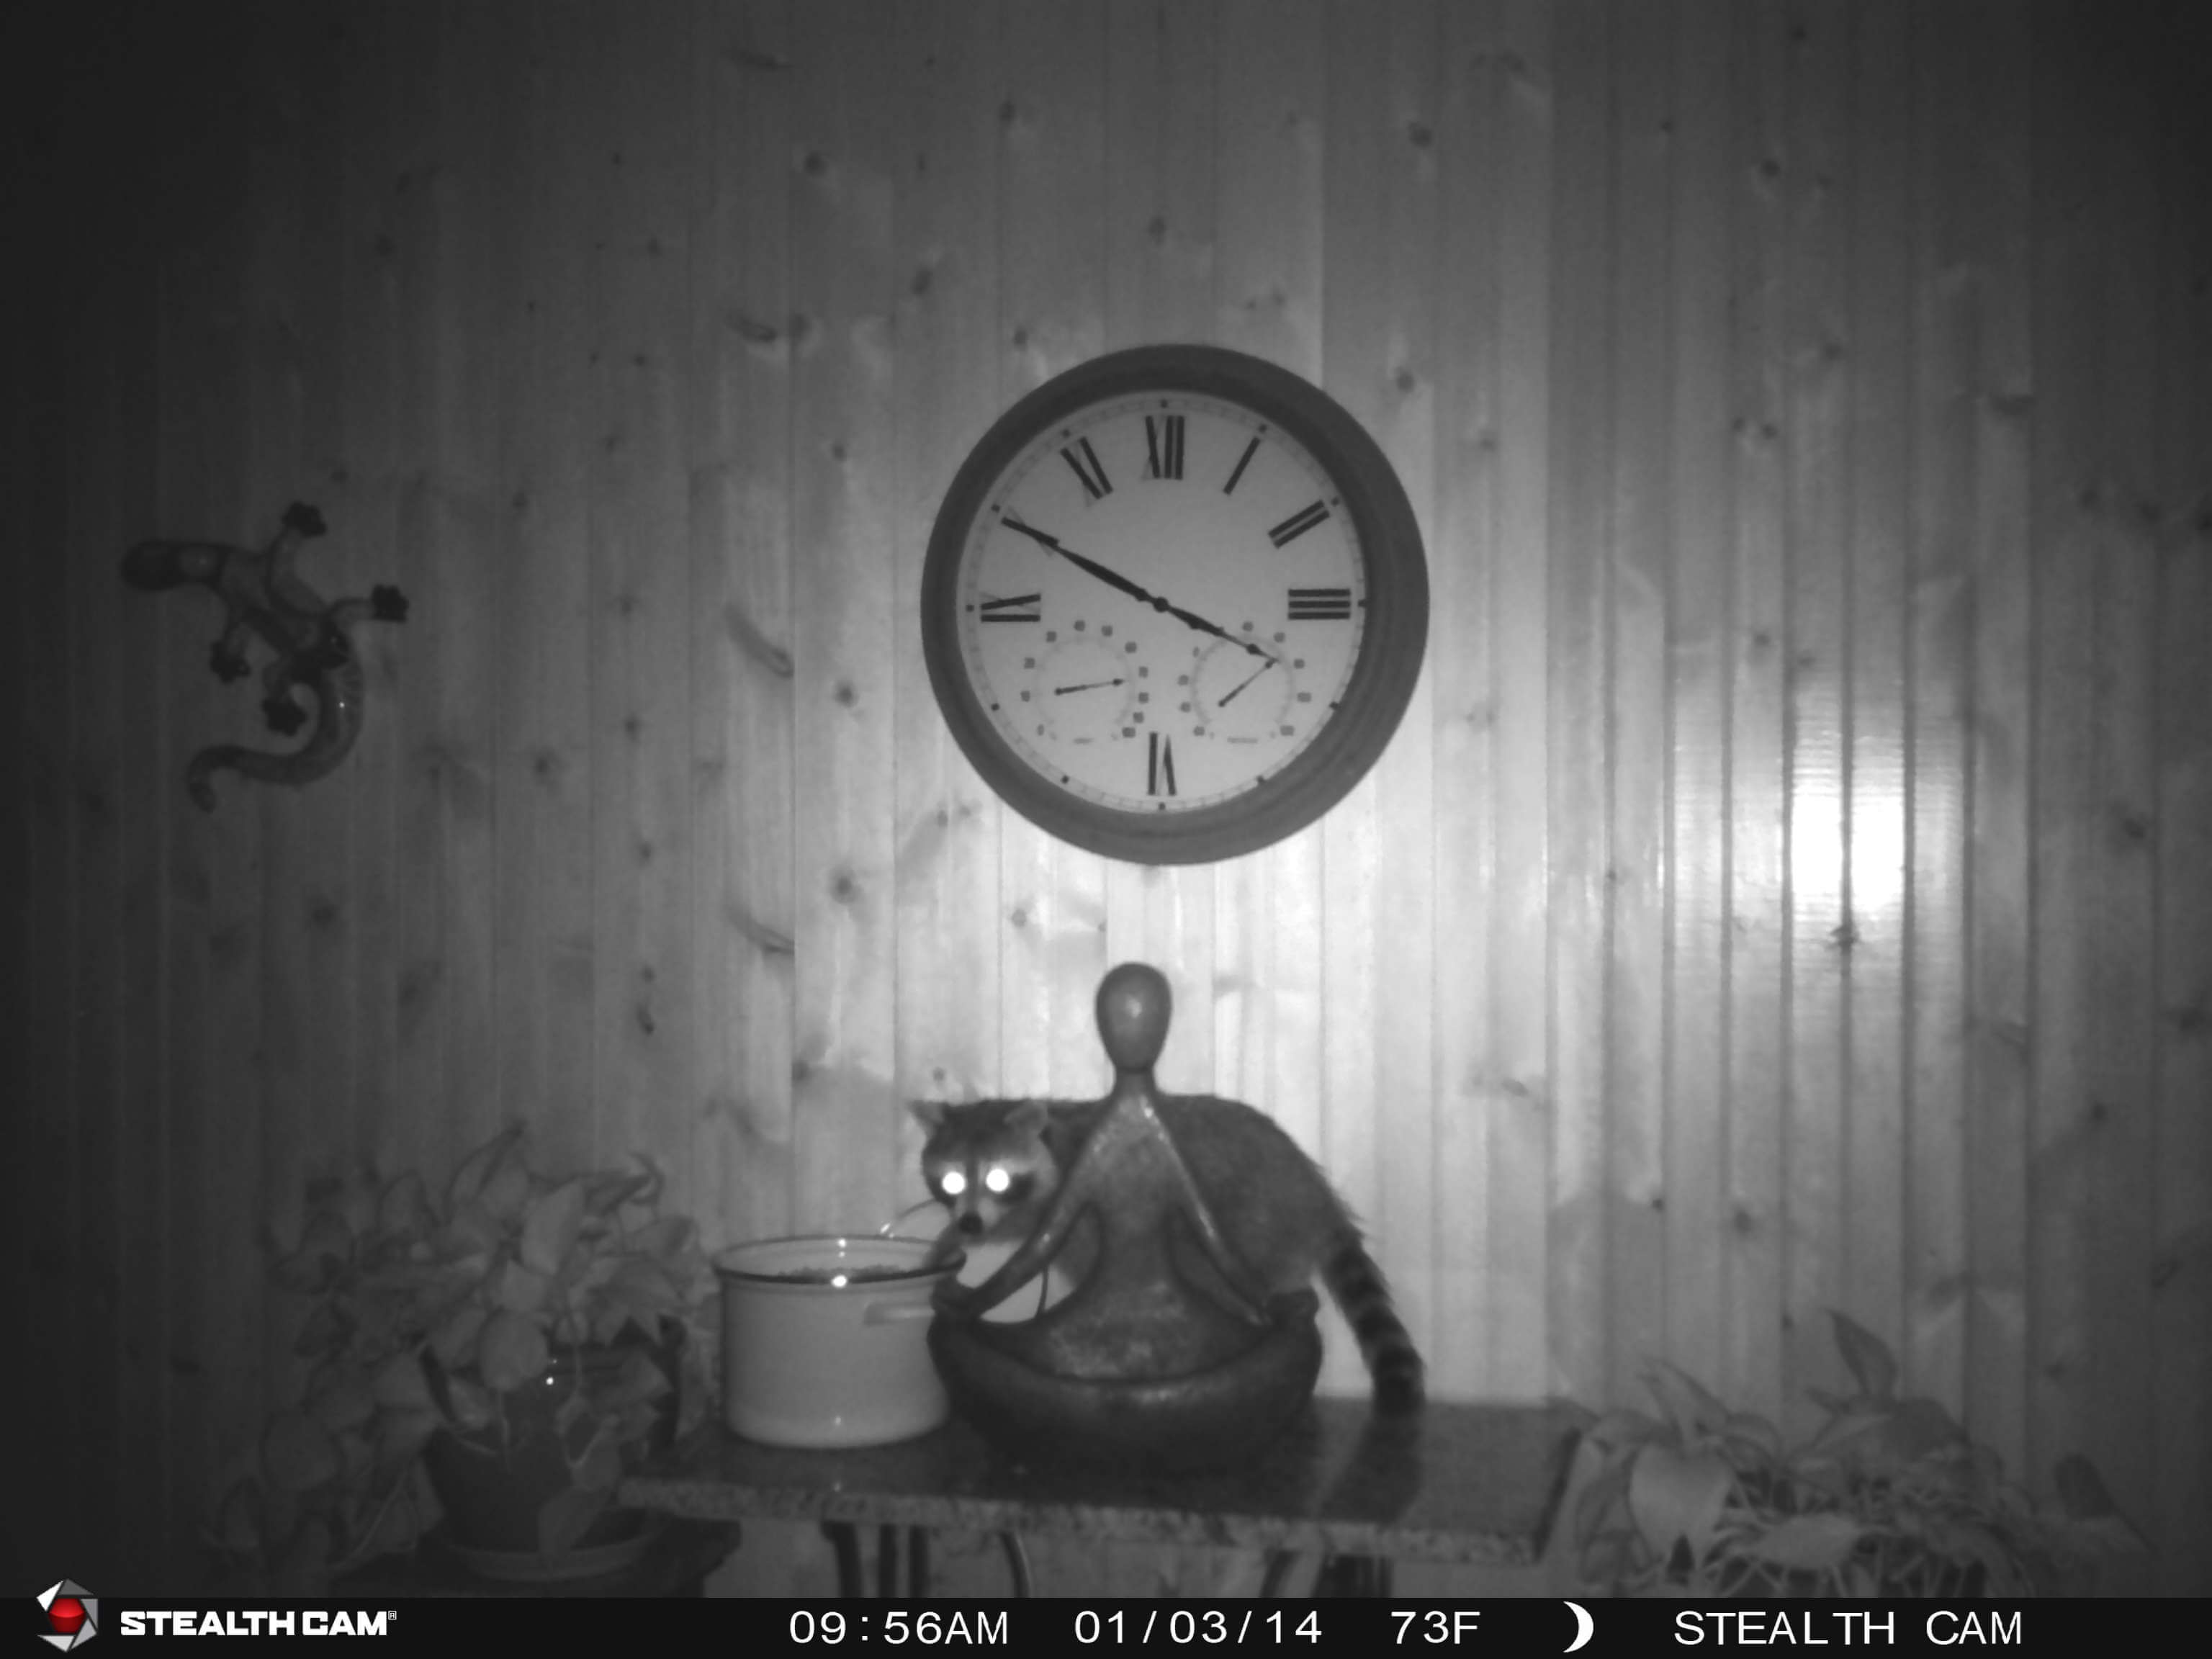 Raccoon game camera image of him stealing cat food at night